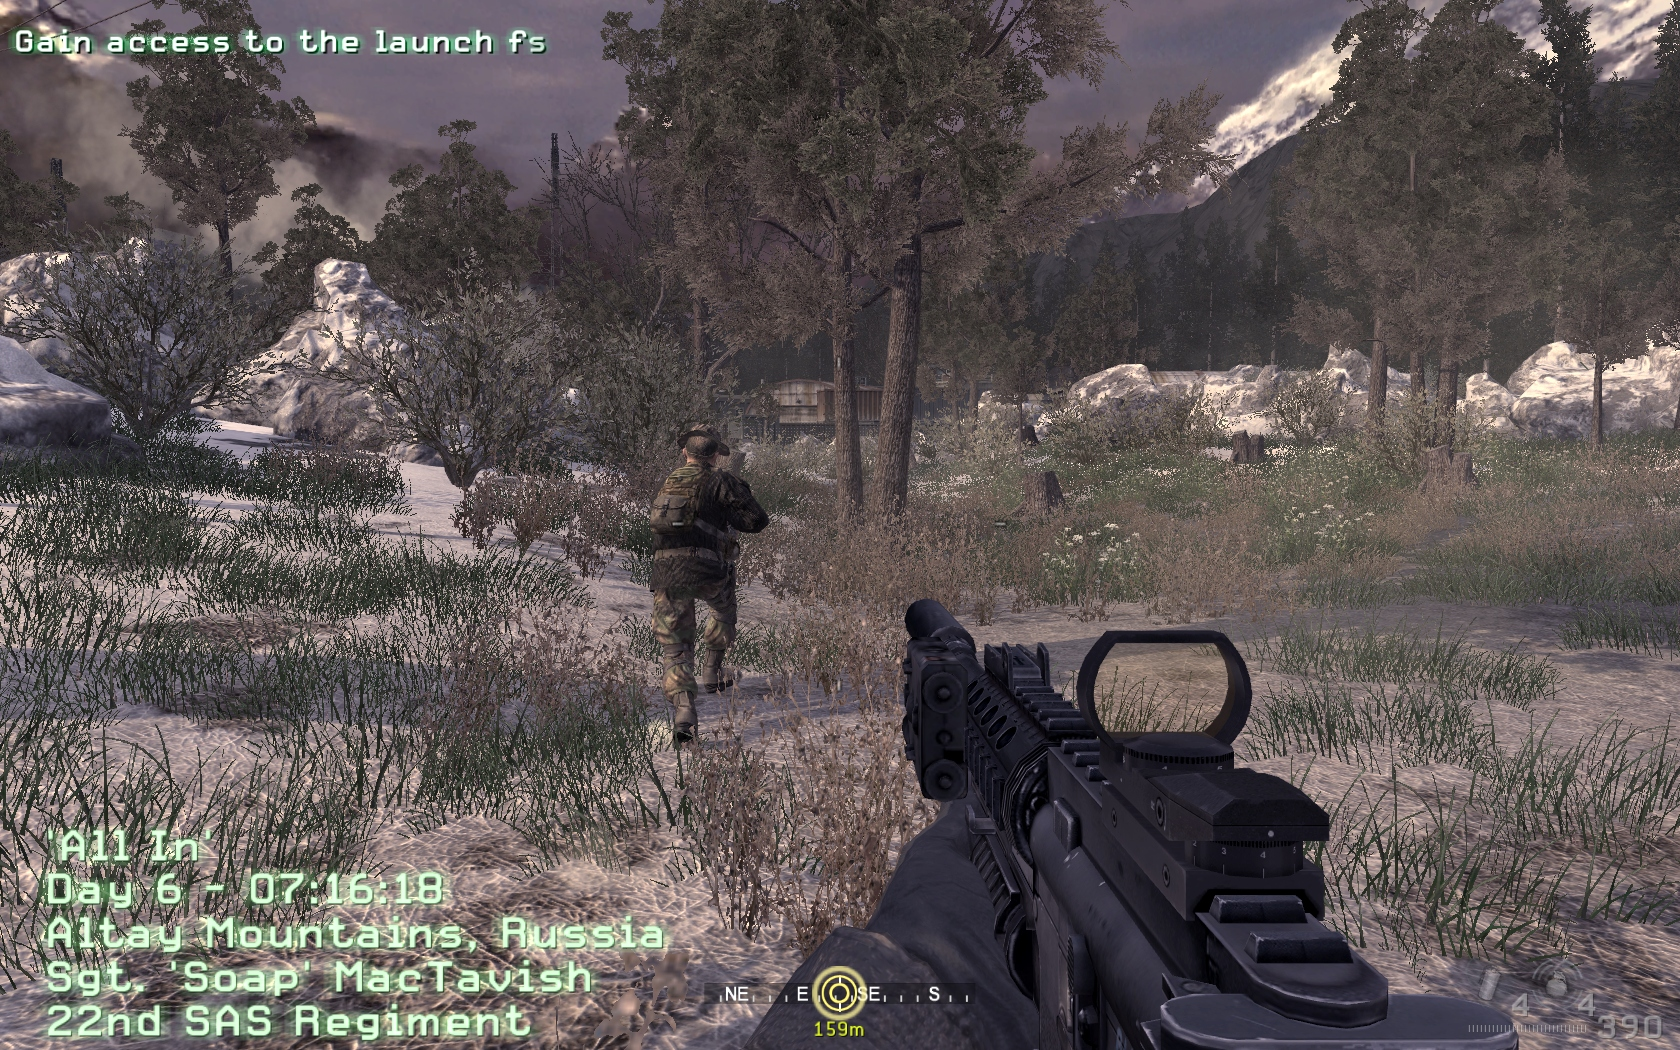 2. Call of Duty 4: Modern Warfare